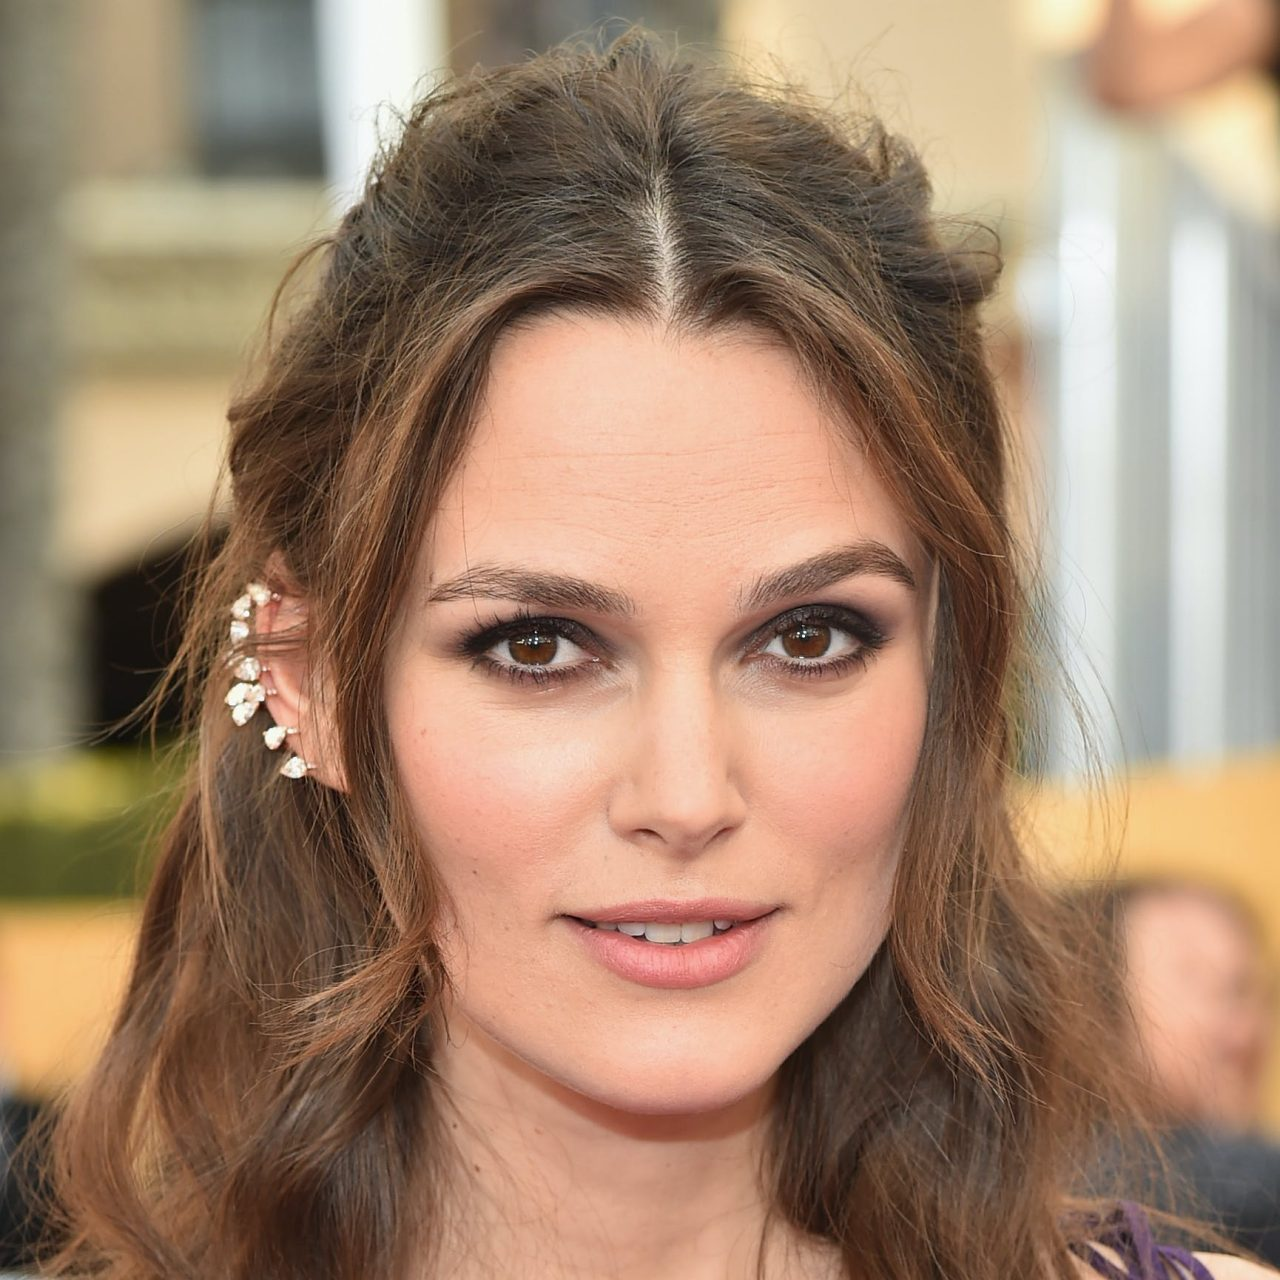 https___www.biography.com_.image_MTQyMDAyMDM3MDU0MjUyNzQw_keira-knightley_gettyimages-462189176jpg